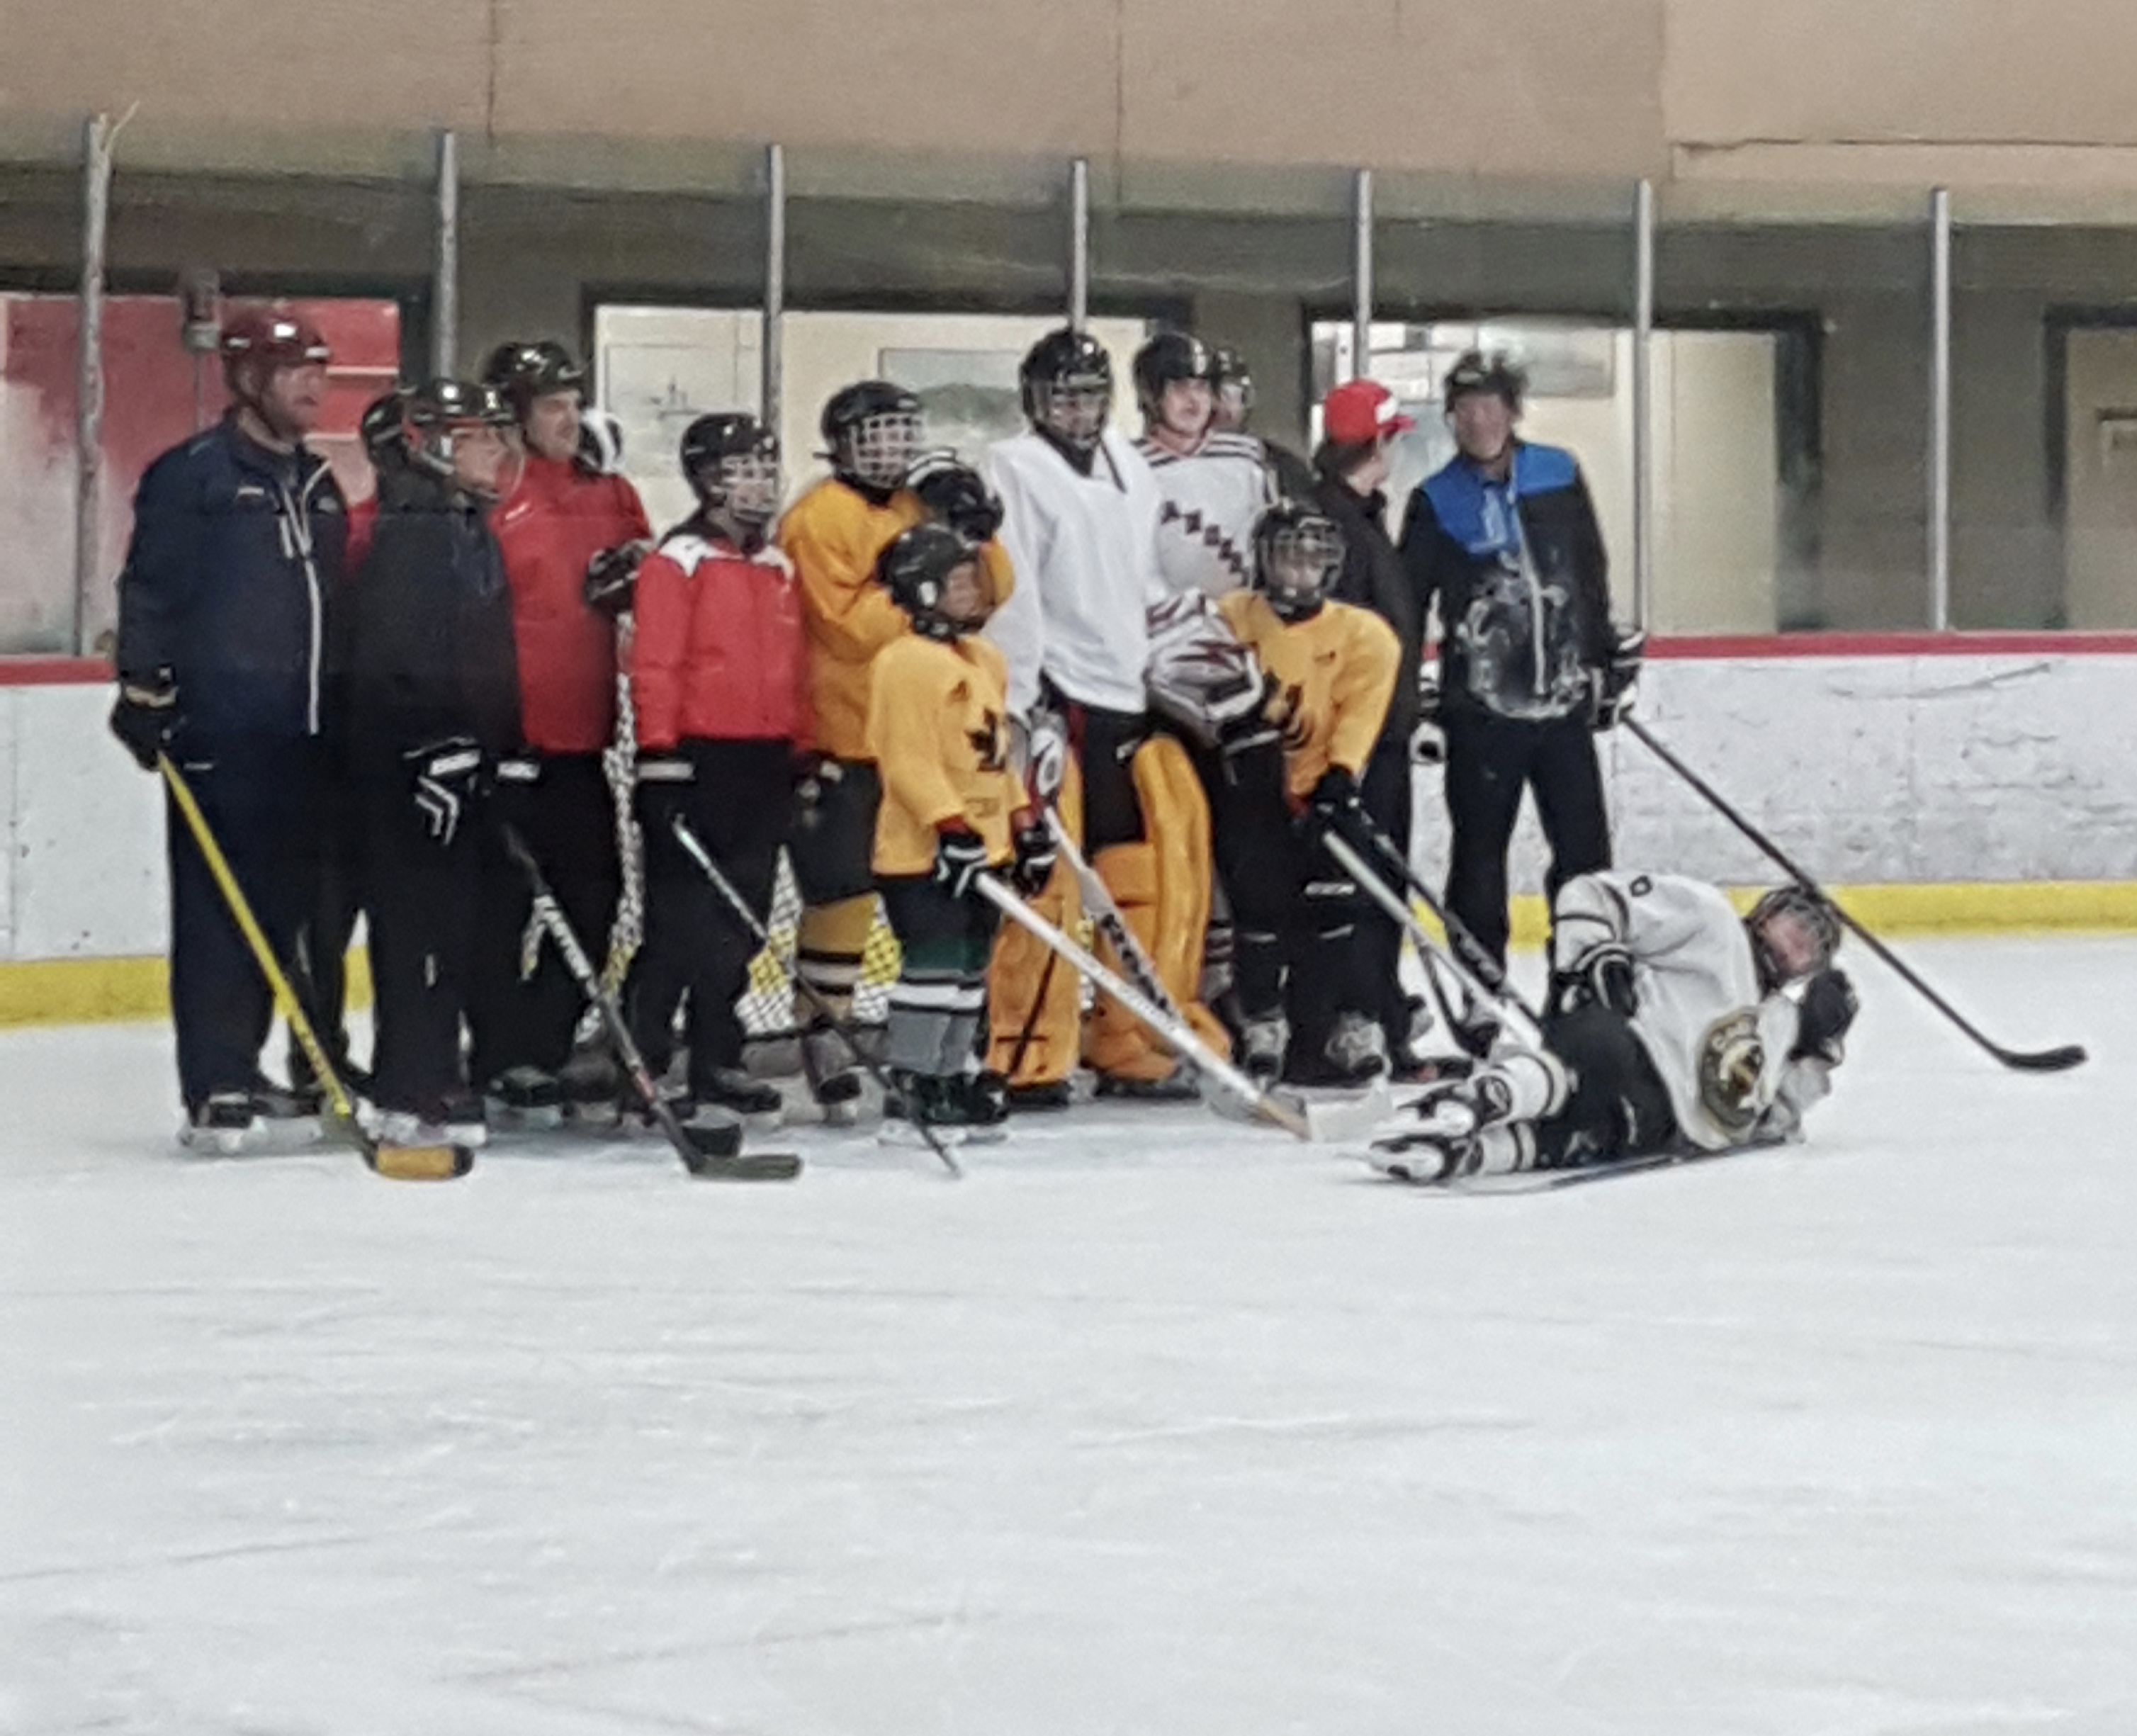 Group photo of Blind Hockey group on the ice